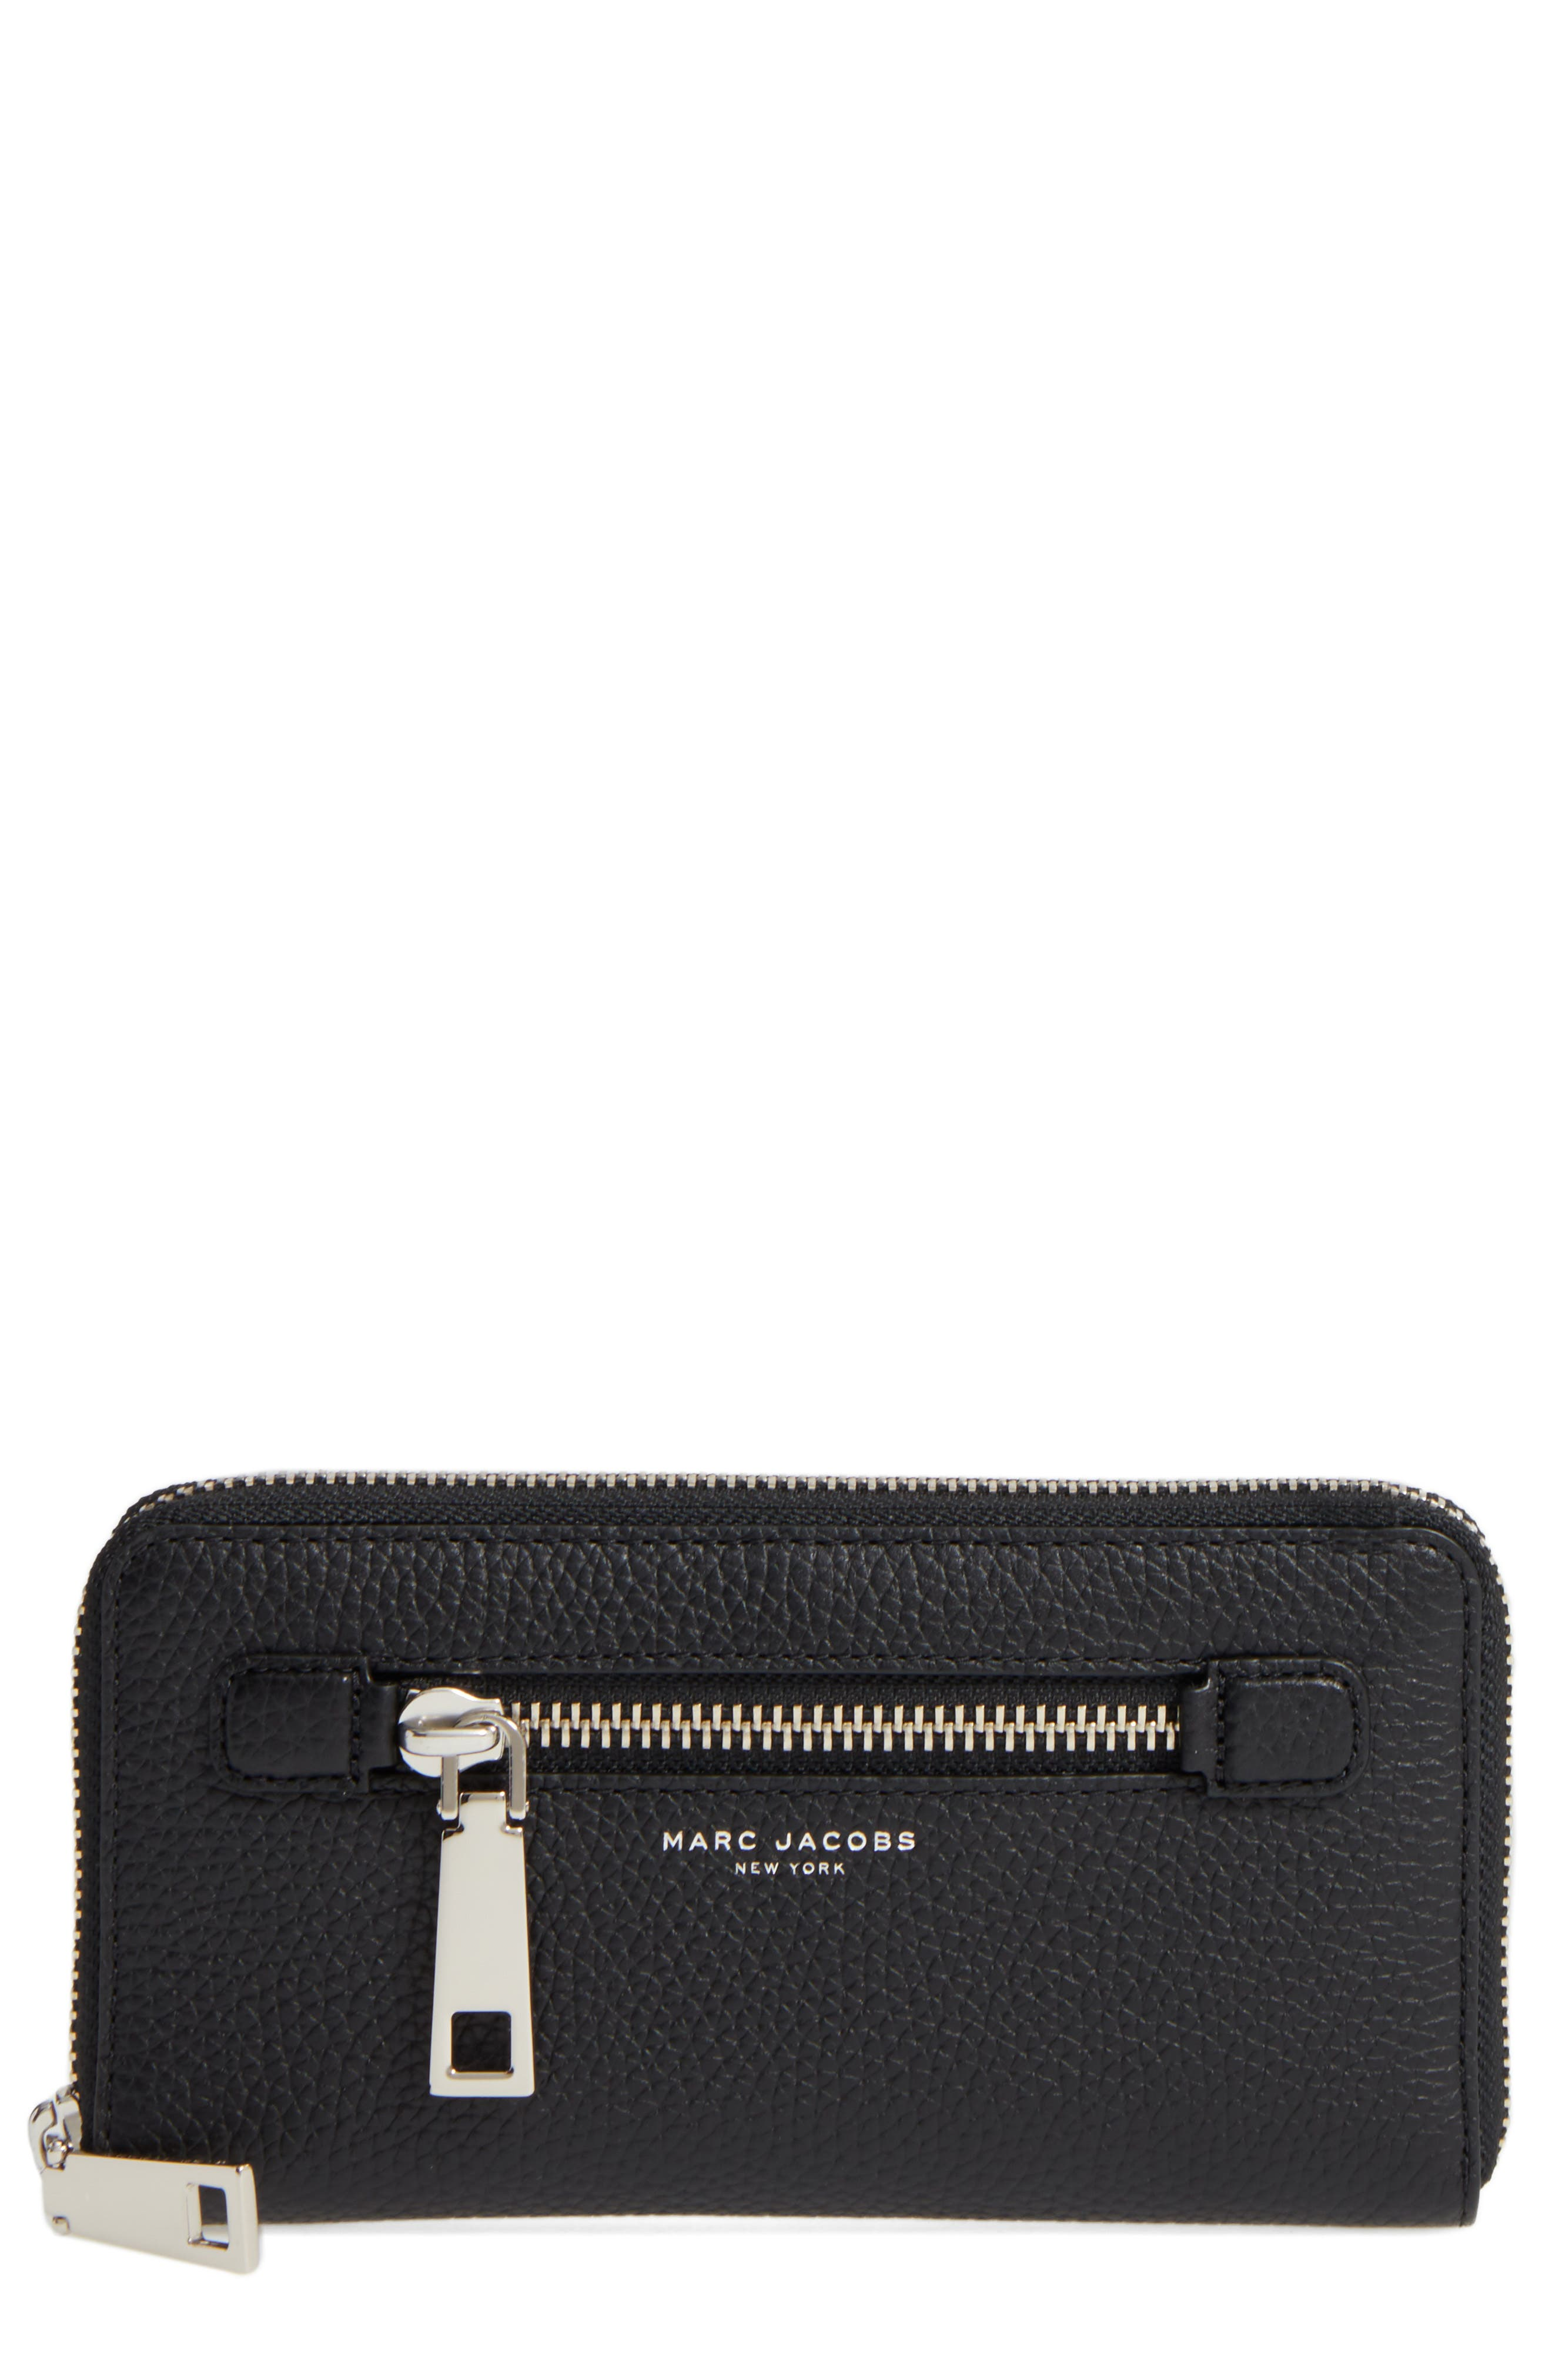 Vertical Zippy Wallet,                         Main,                         color, Black